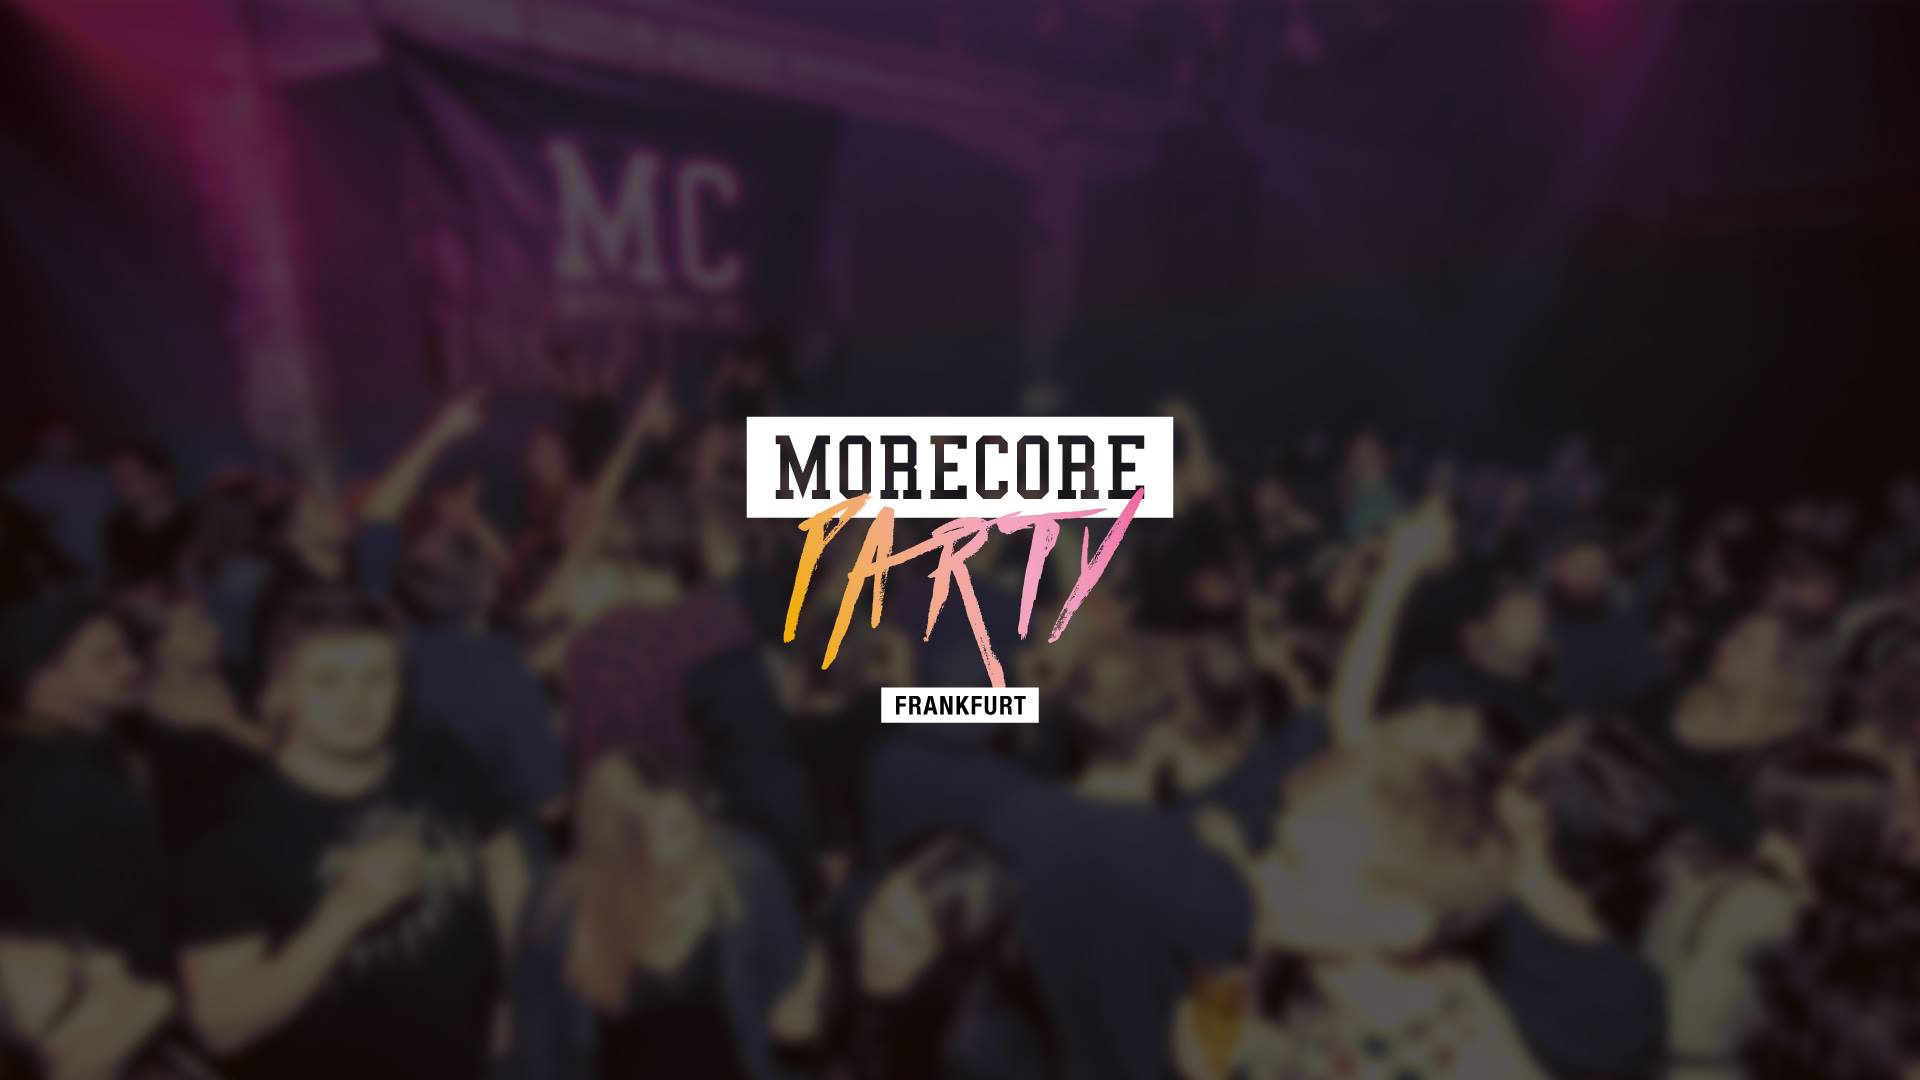 MoreCore Party Frankfurt